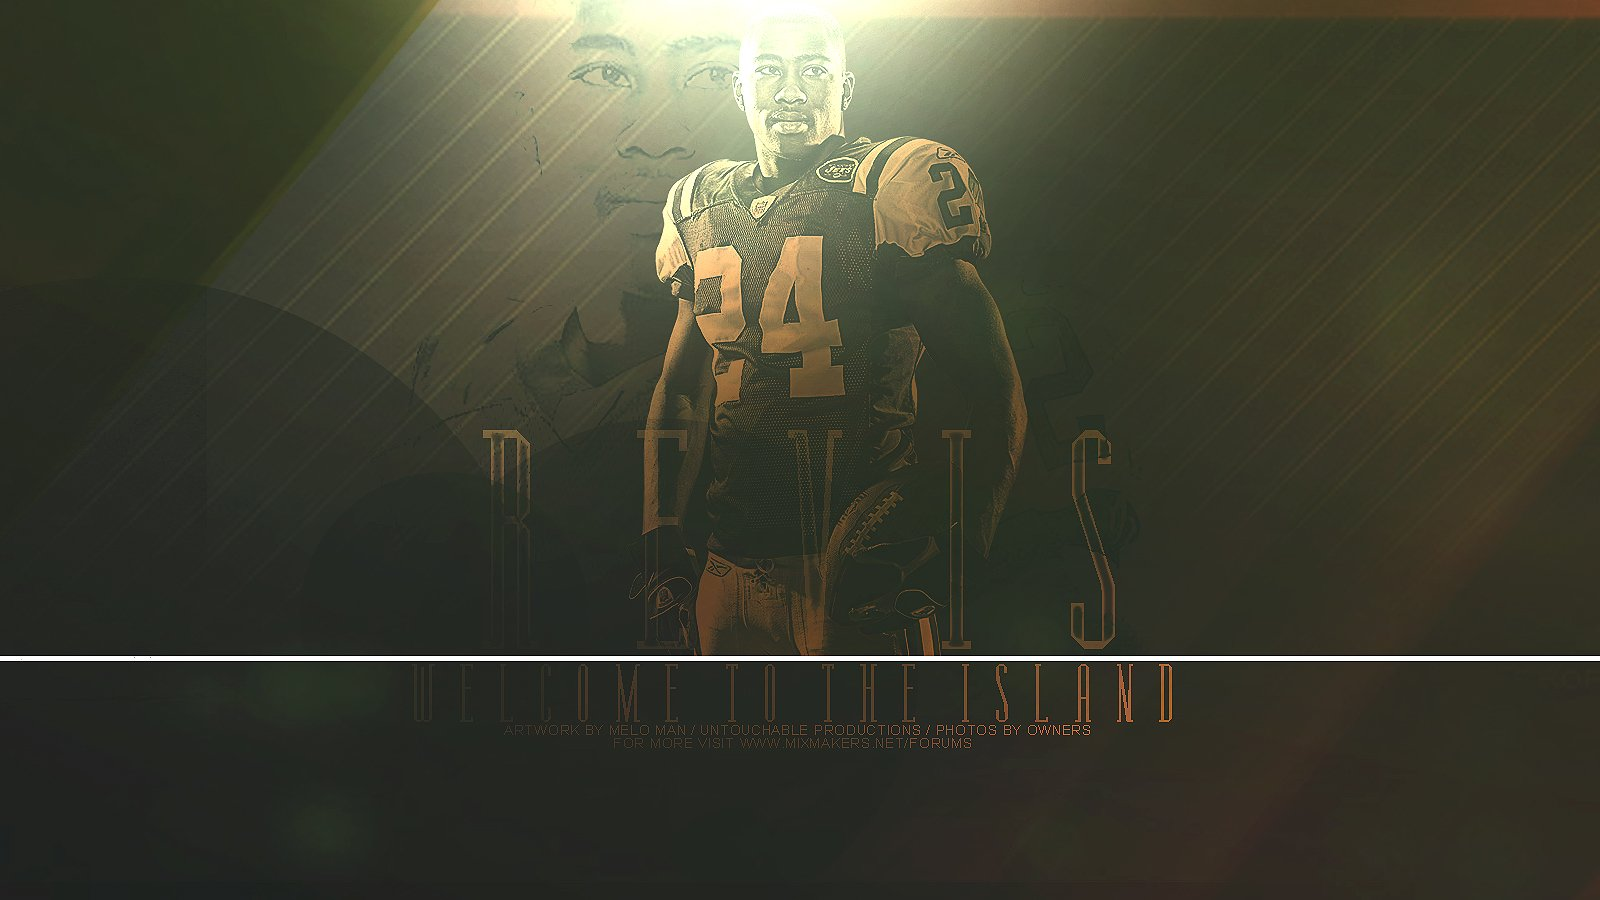 Sports - New York Jets  Wallpaper